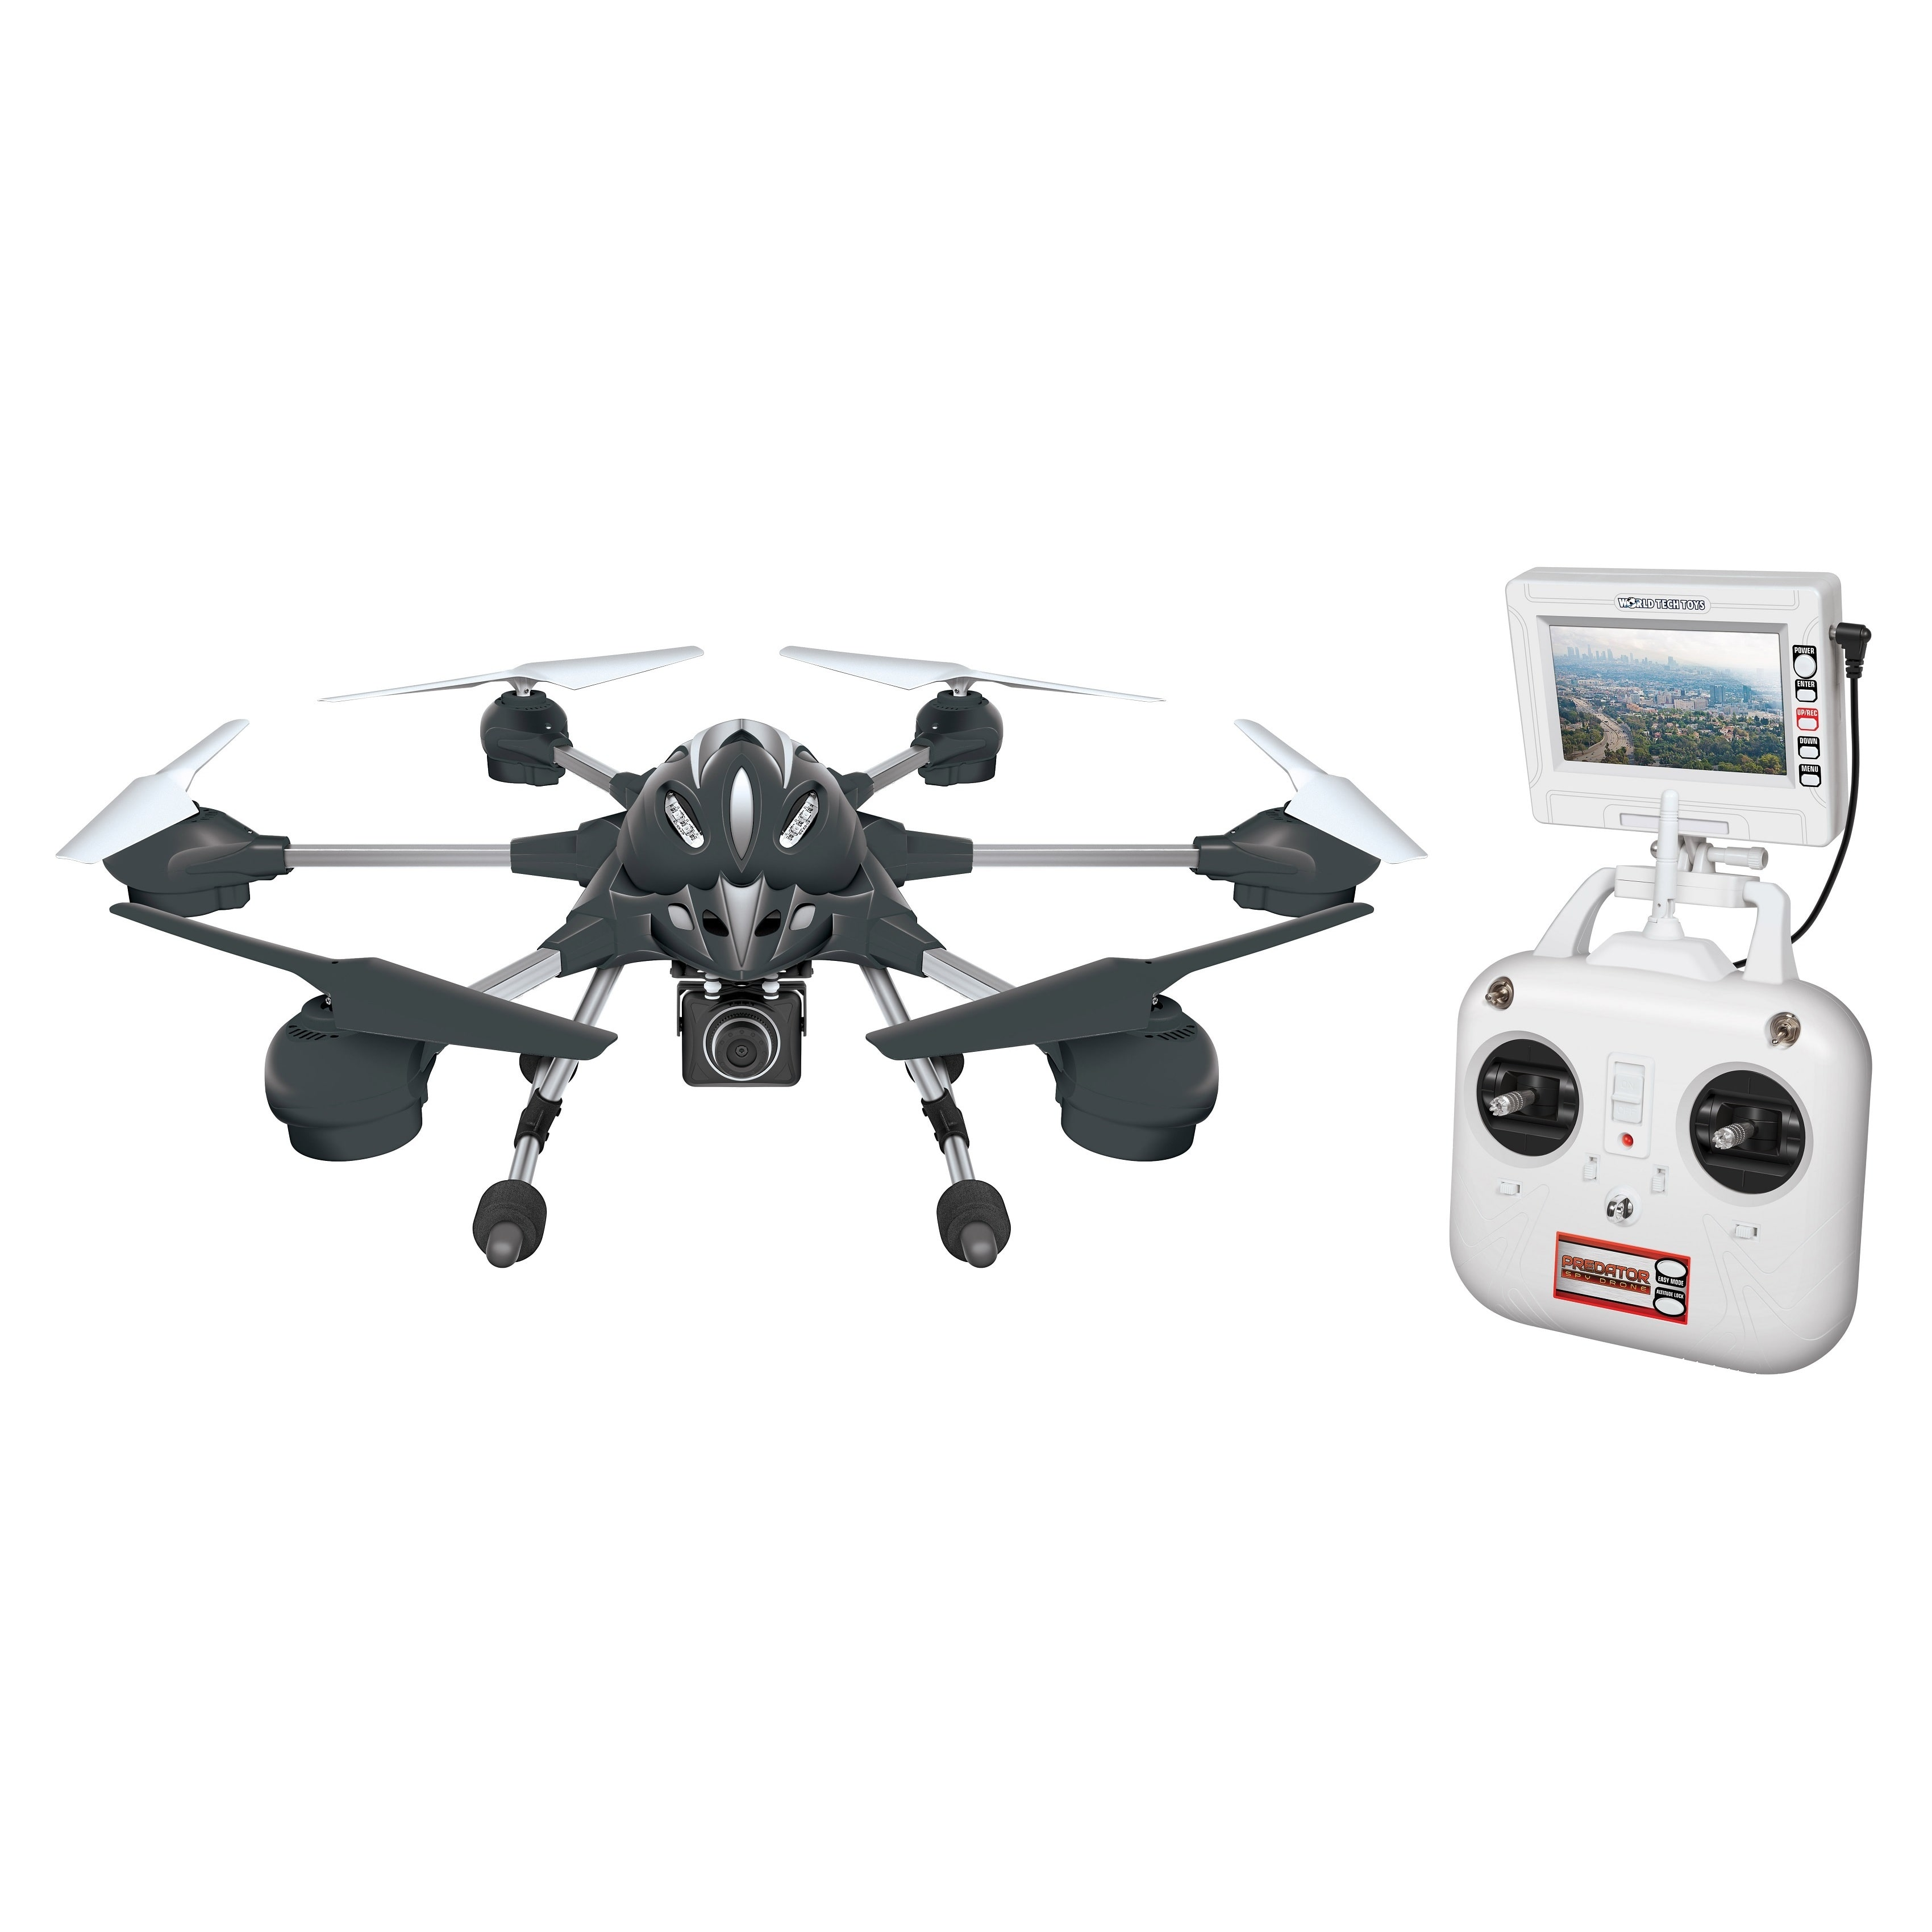 World Tech Toys Alpha 2.4GHz 4.5CH Camera RC Spy Drone by Overstock